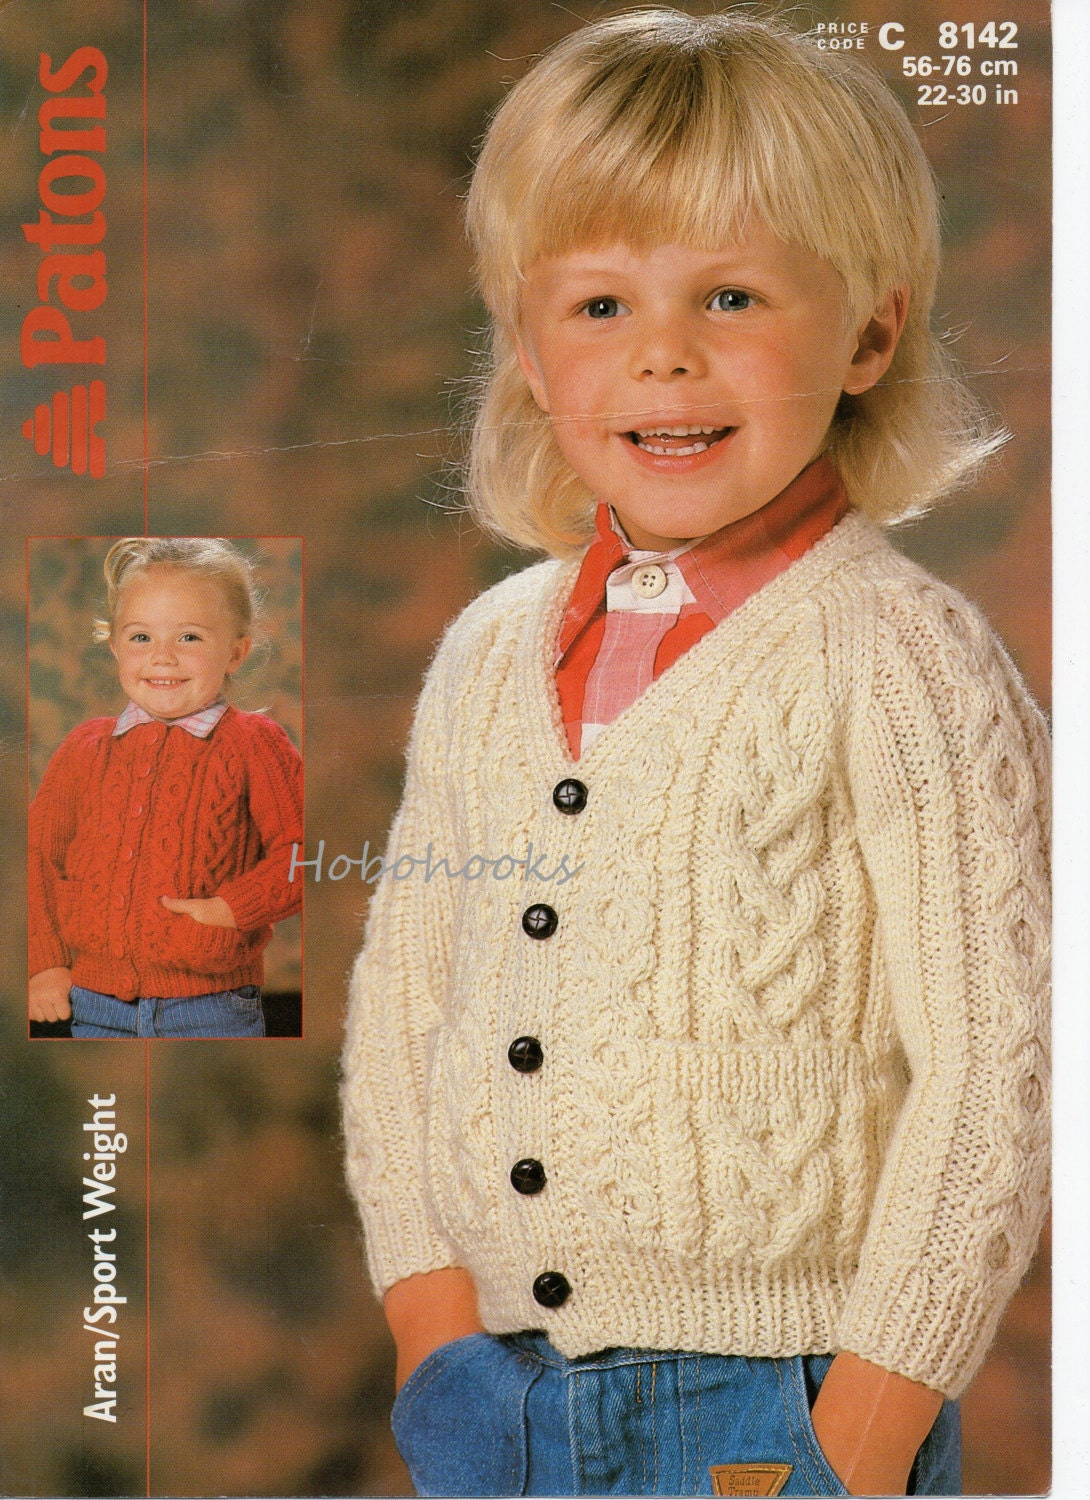 Childs Aran Jumper Knitting Pattern : childrens aran cardigan knitting pattern 22-30 inches aran